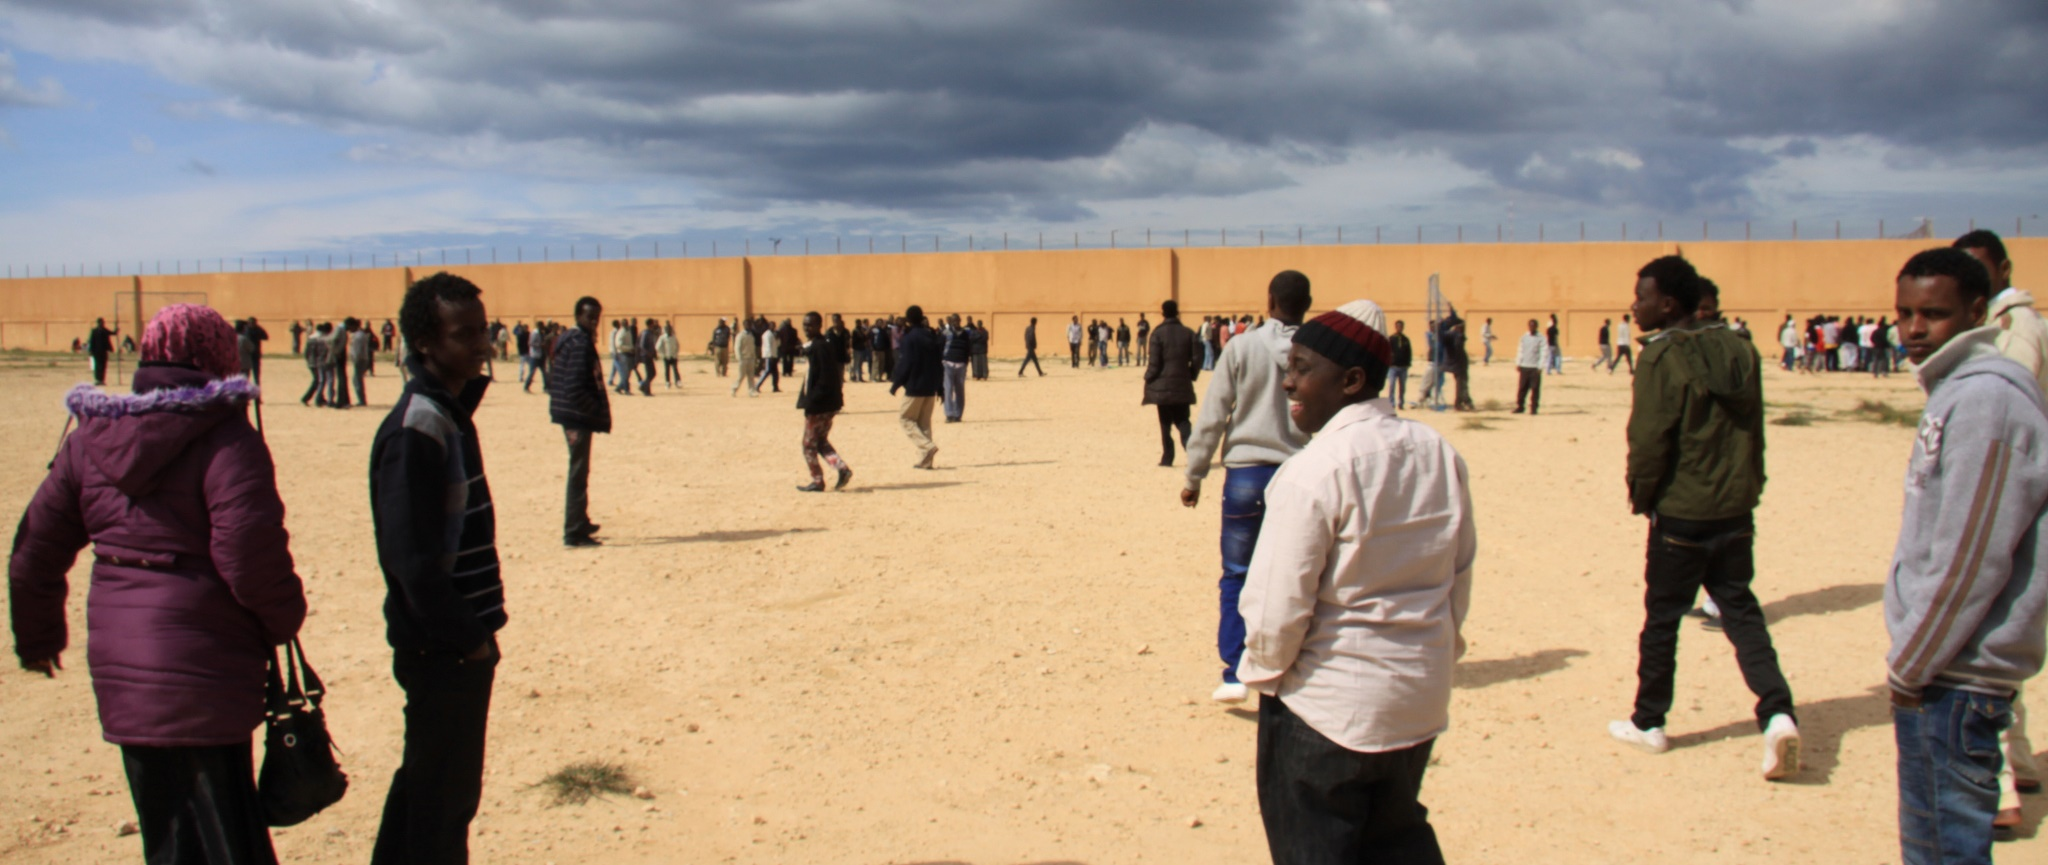 People from sub-Saharan Africa, including Somalis and Eritreans, talk in the vast yard of the detention center of Benghazi (UNHCR)